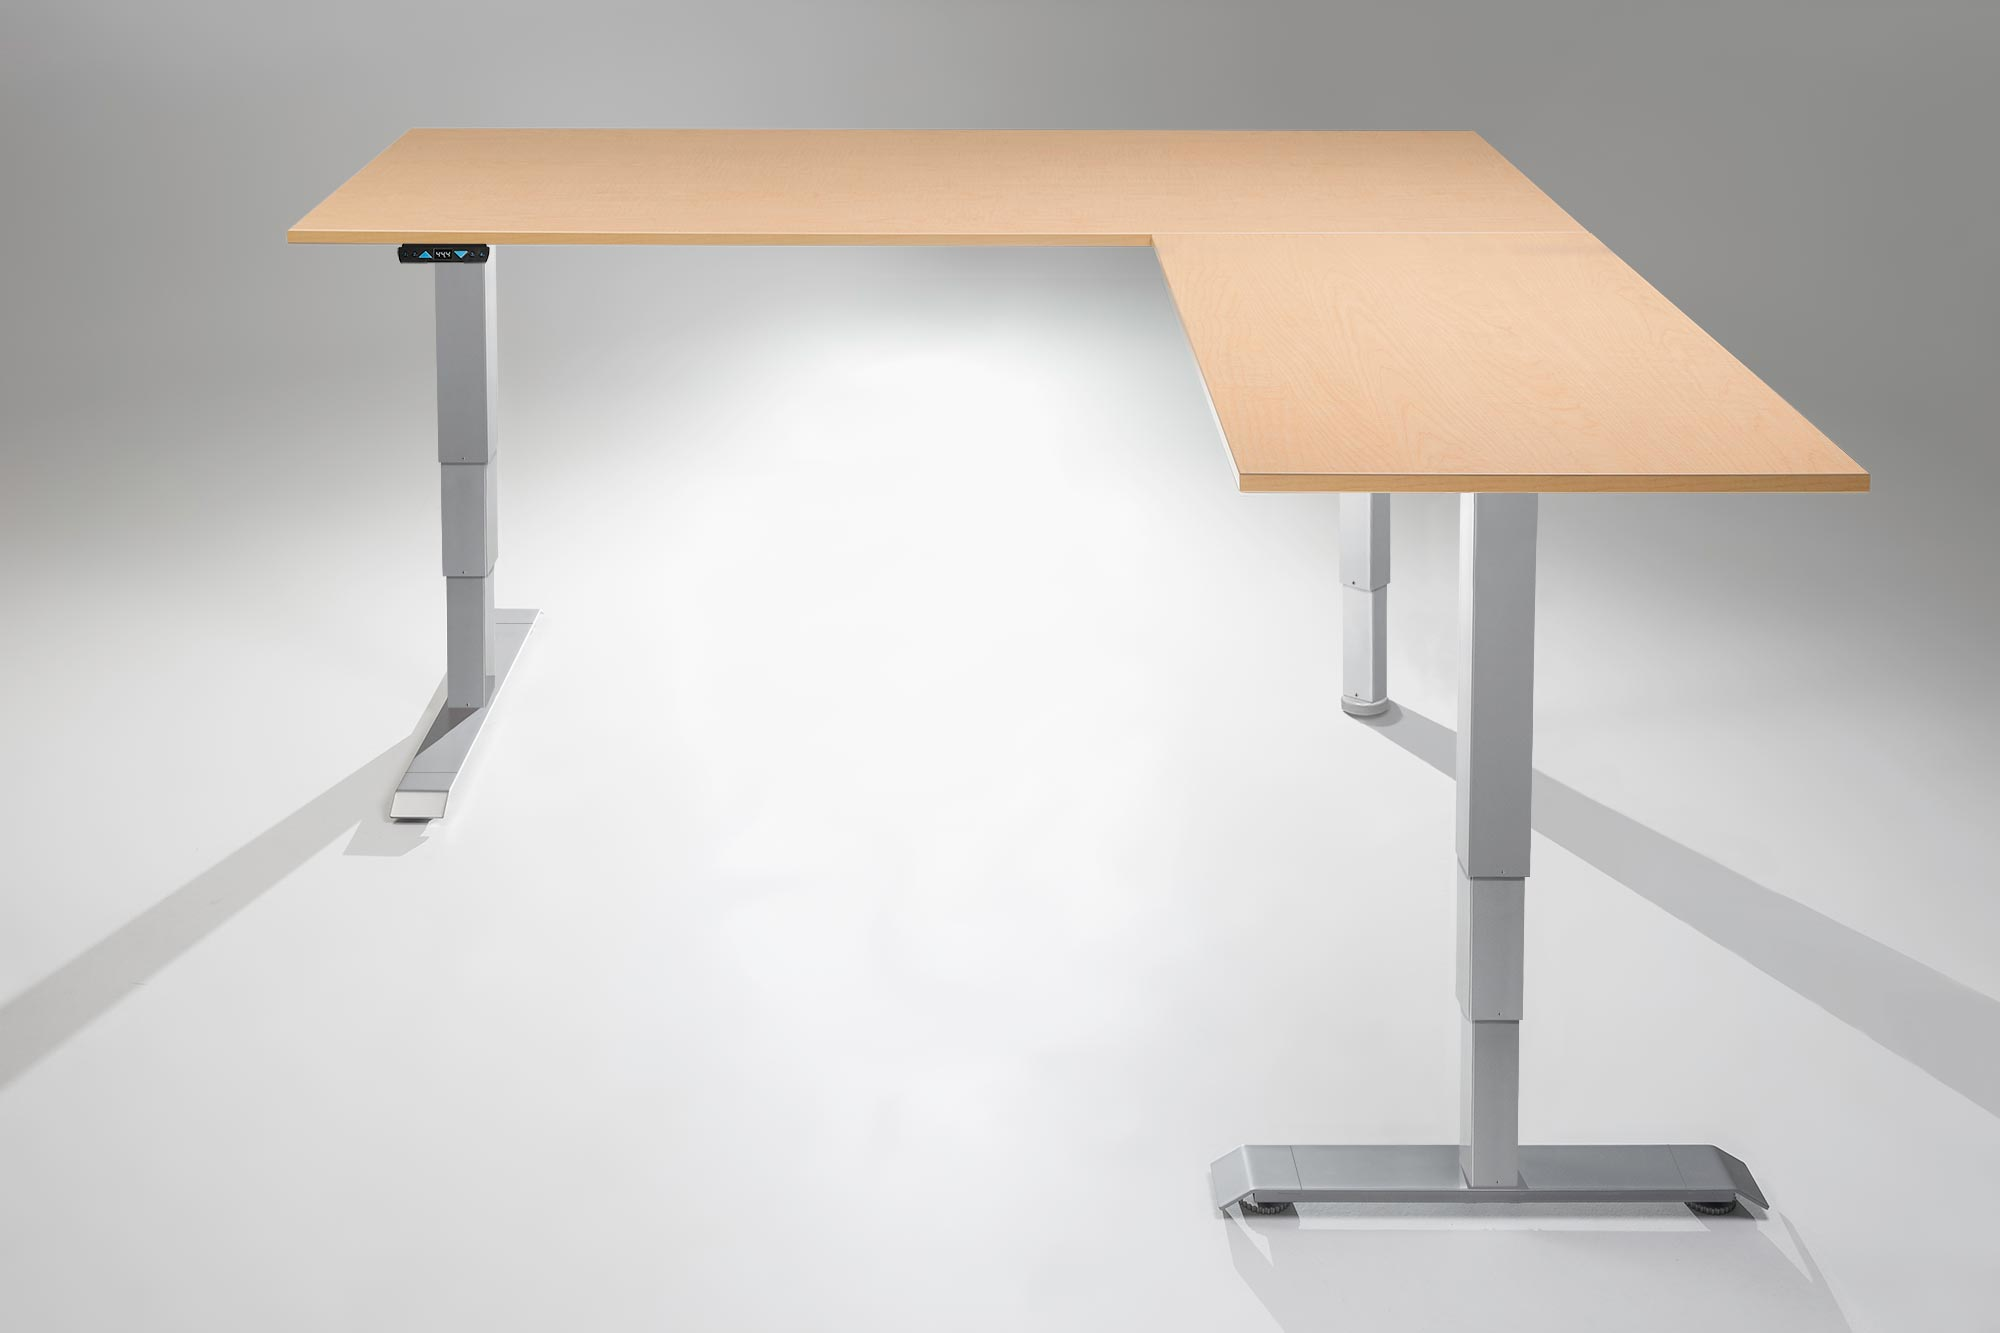 The Multitable Electric L Shaped Standing Desk Multitable